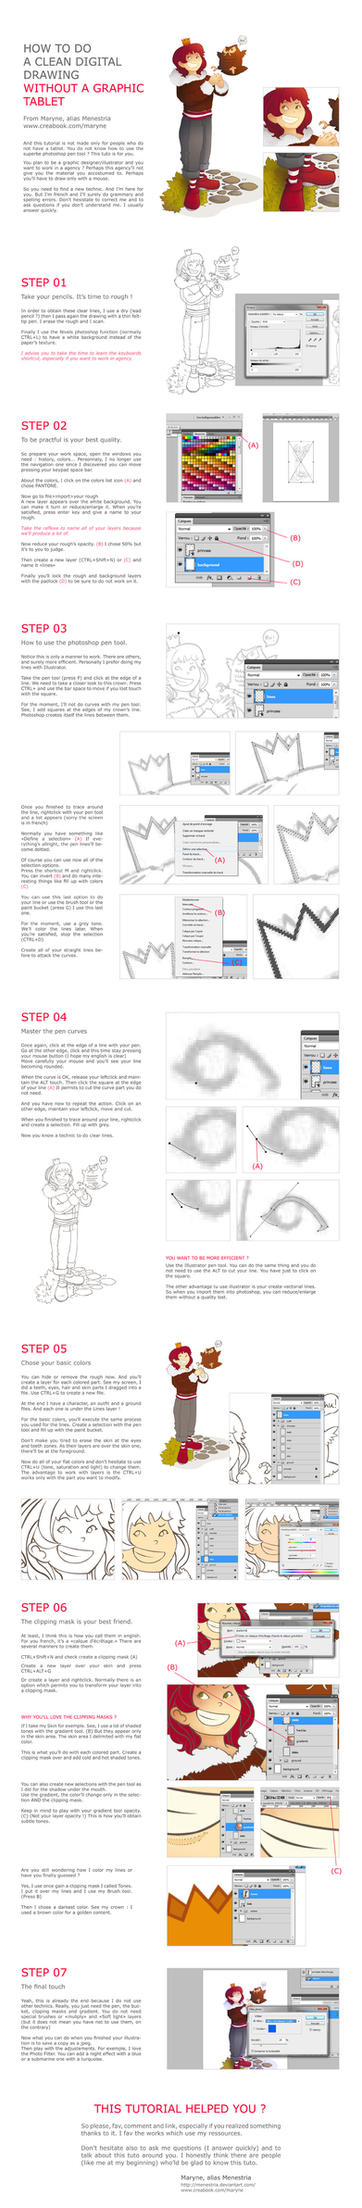 Tutorial, How to draw without a graphic tablet by Menestria